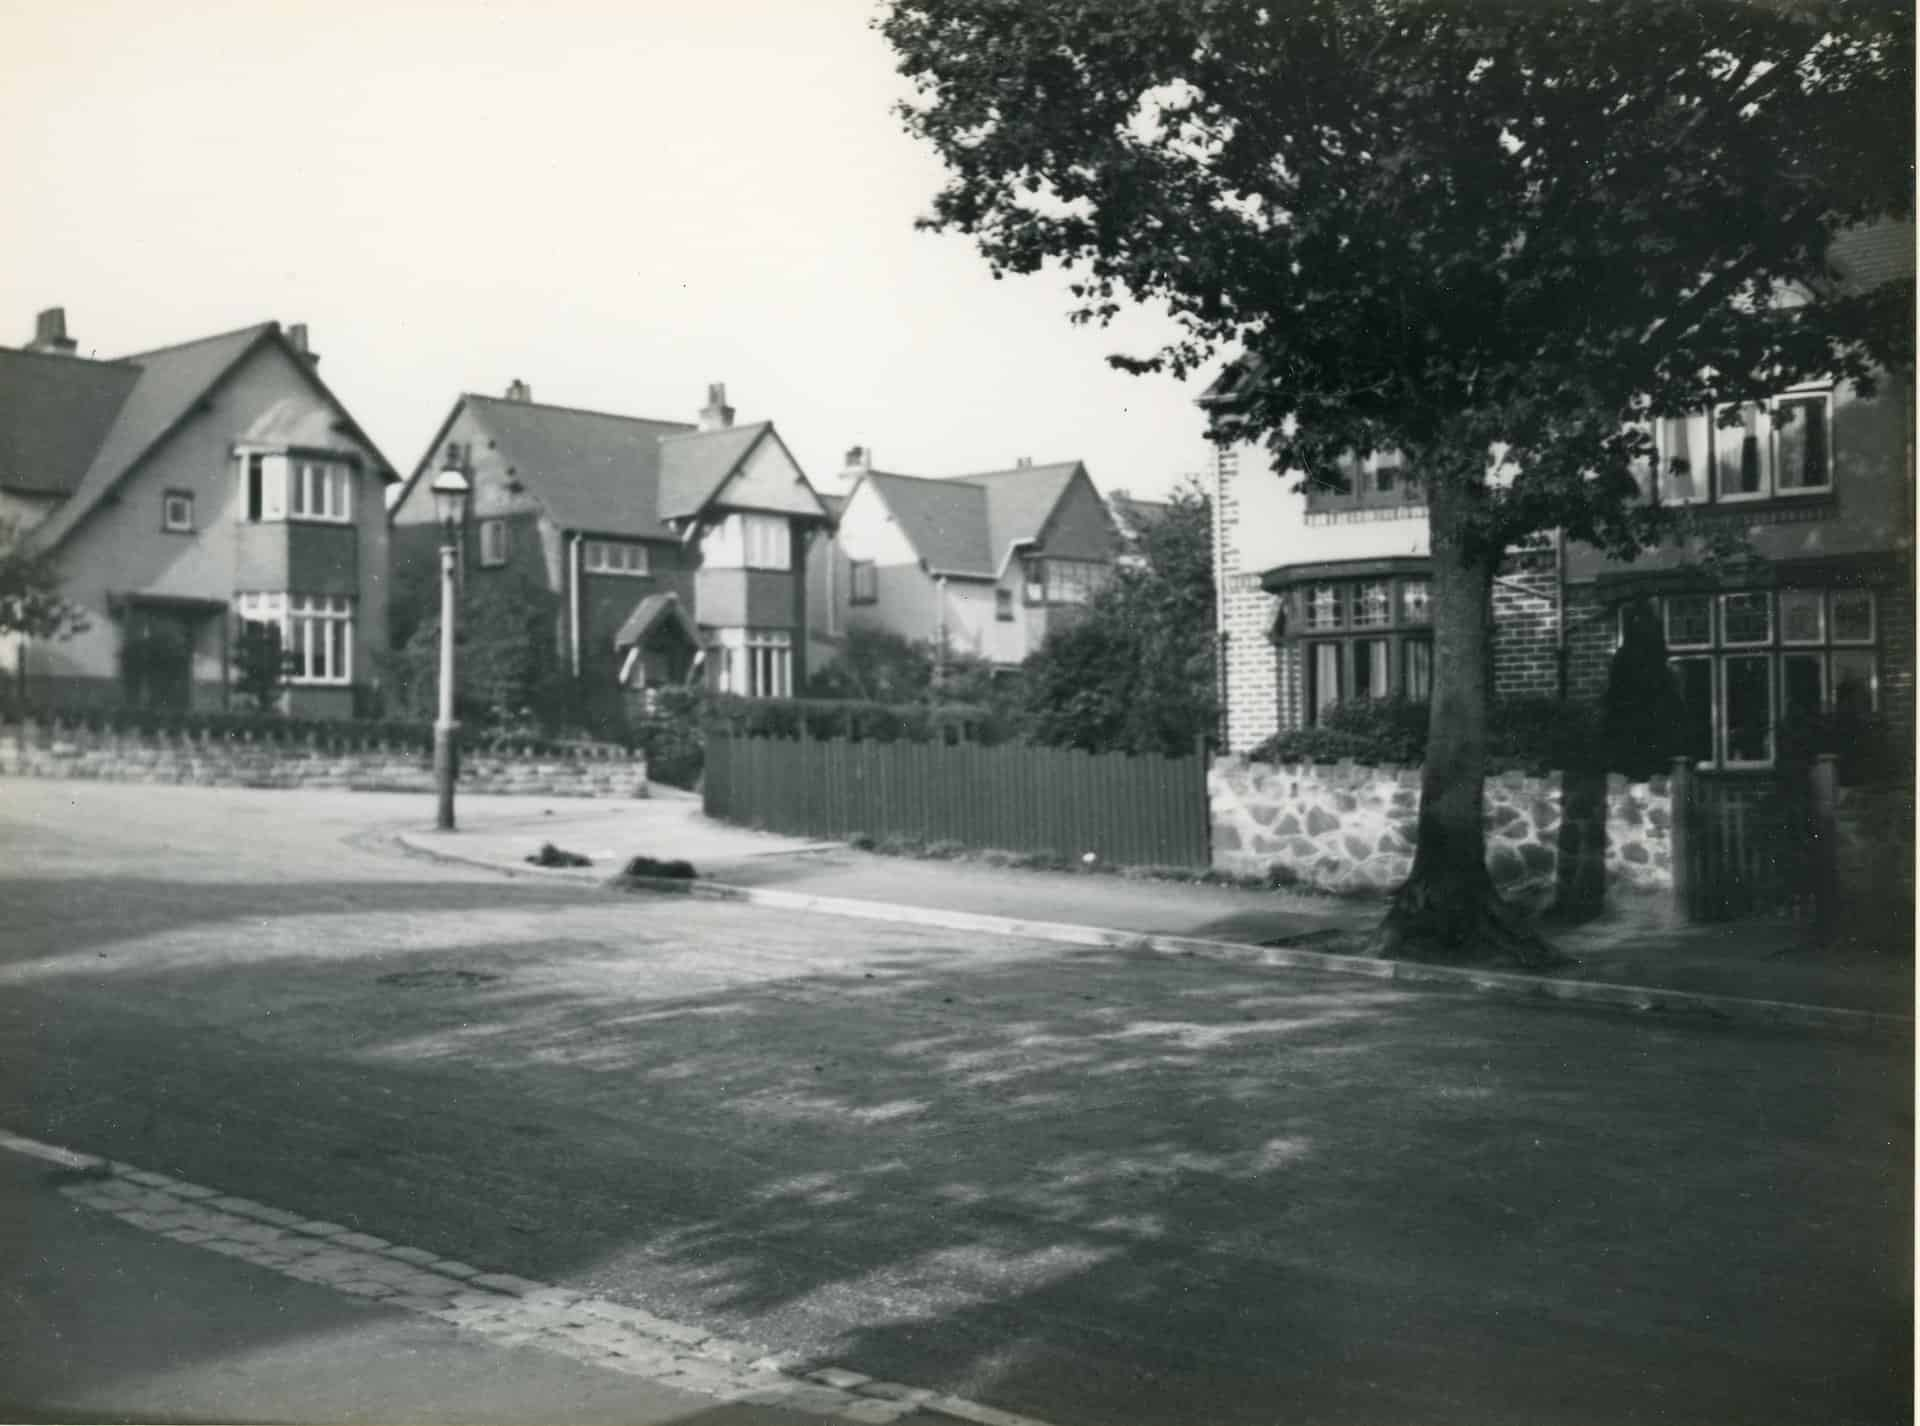 Monmouth Road, Bearwood, Smethwick, 3rd October, 1936.  Photographer: N.A.Smith  Photograph used with kind permission from Sandwell Community History and Archive Service